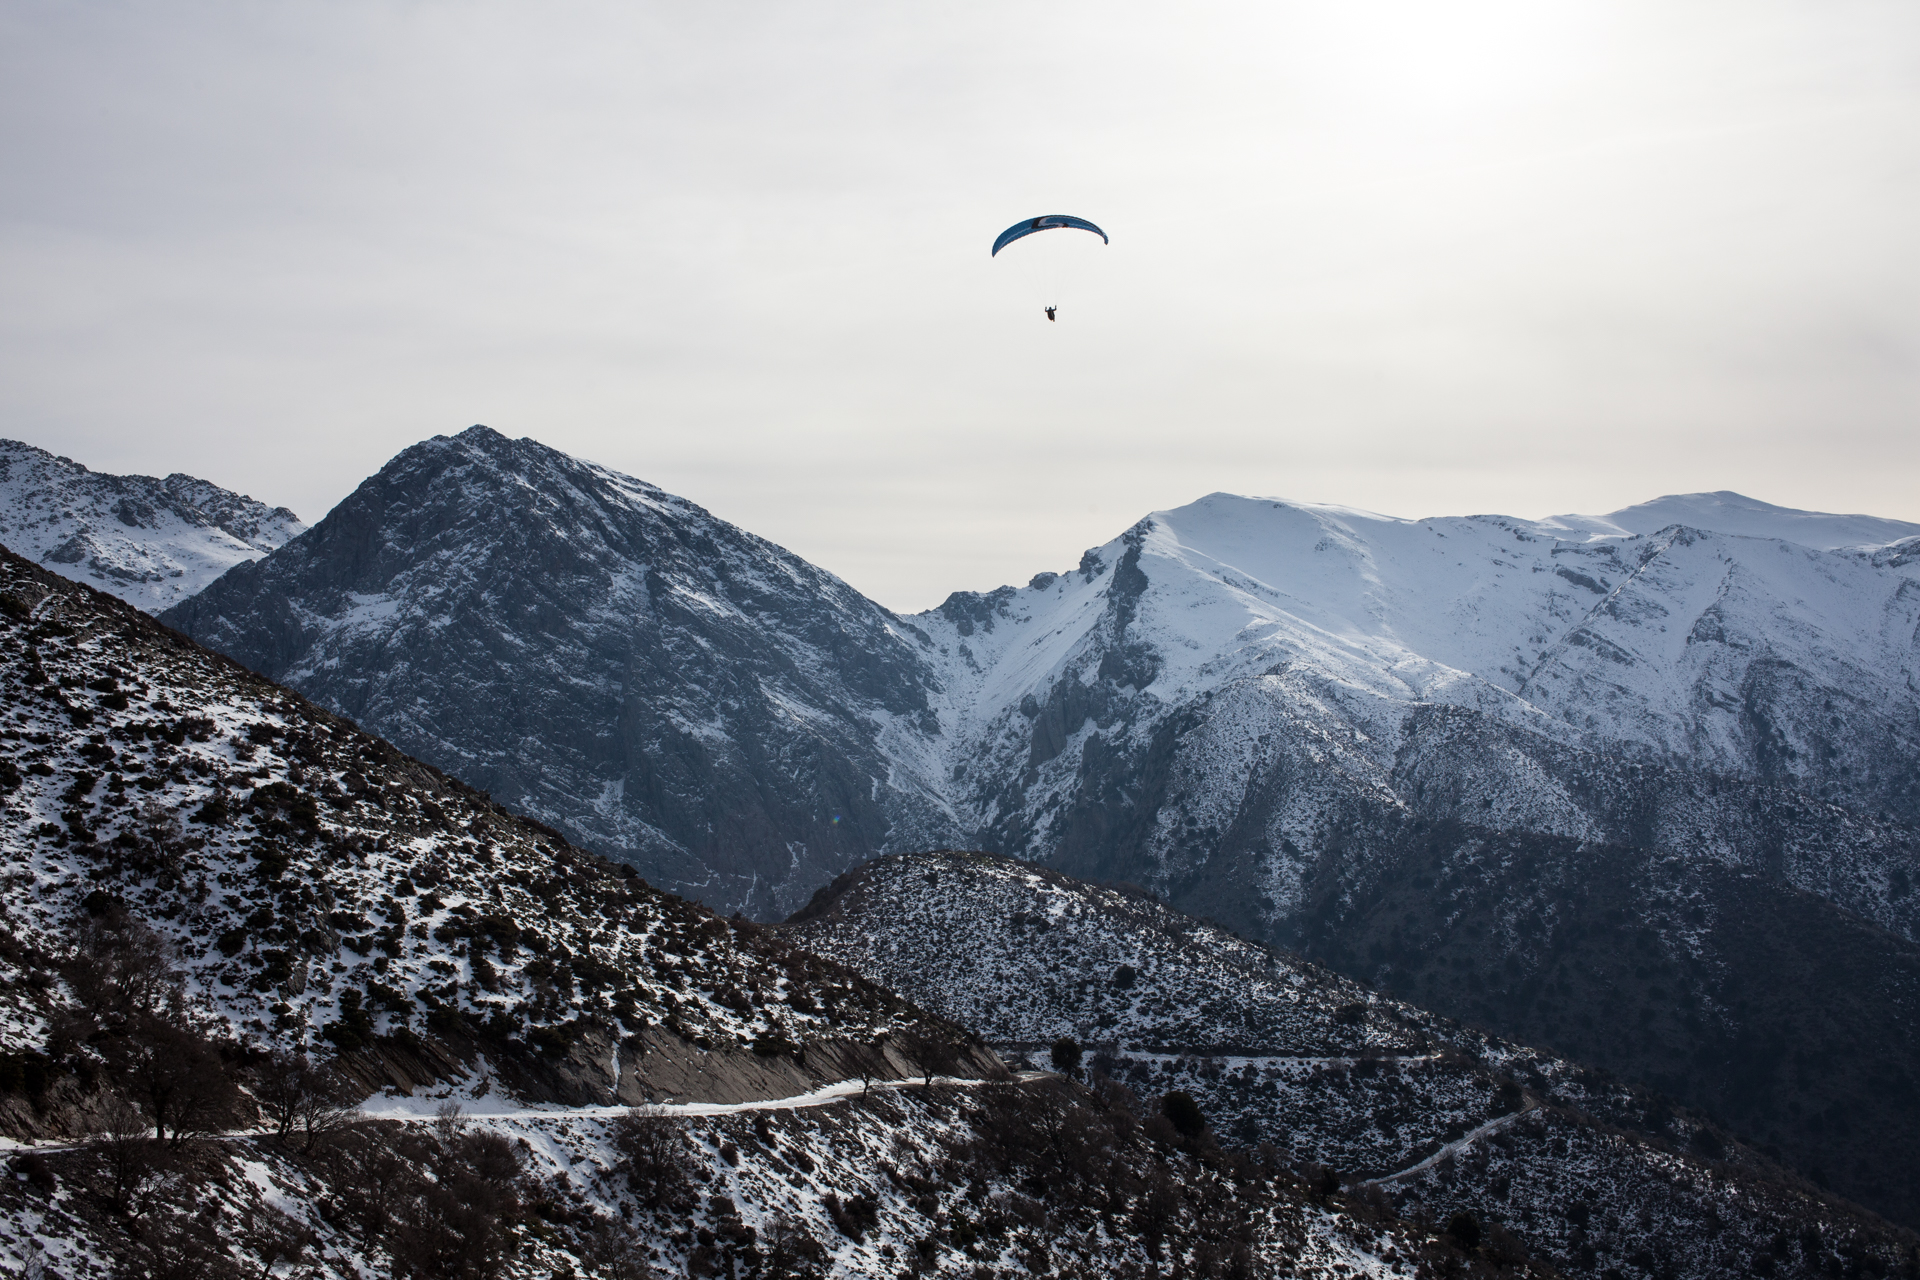 On such a wonderful day, people are paragliding over the White Mountains. Pure joy!